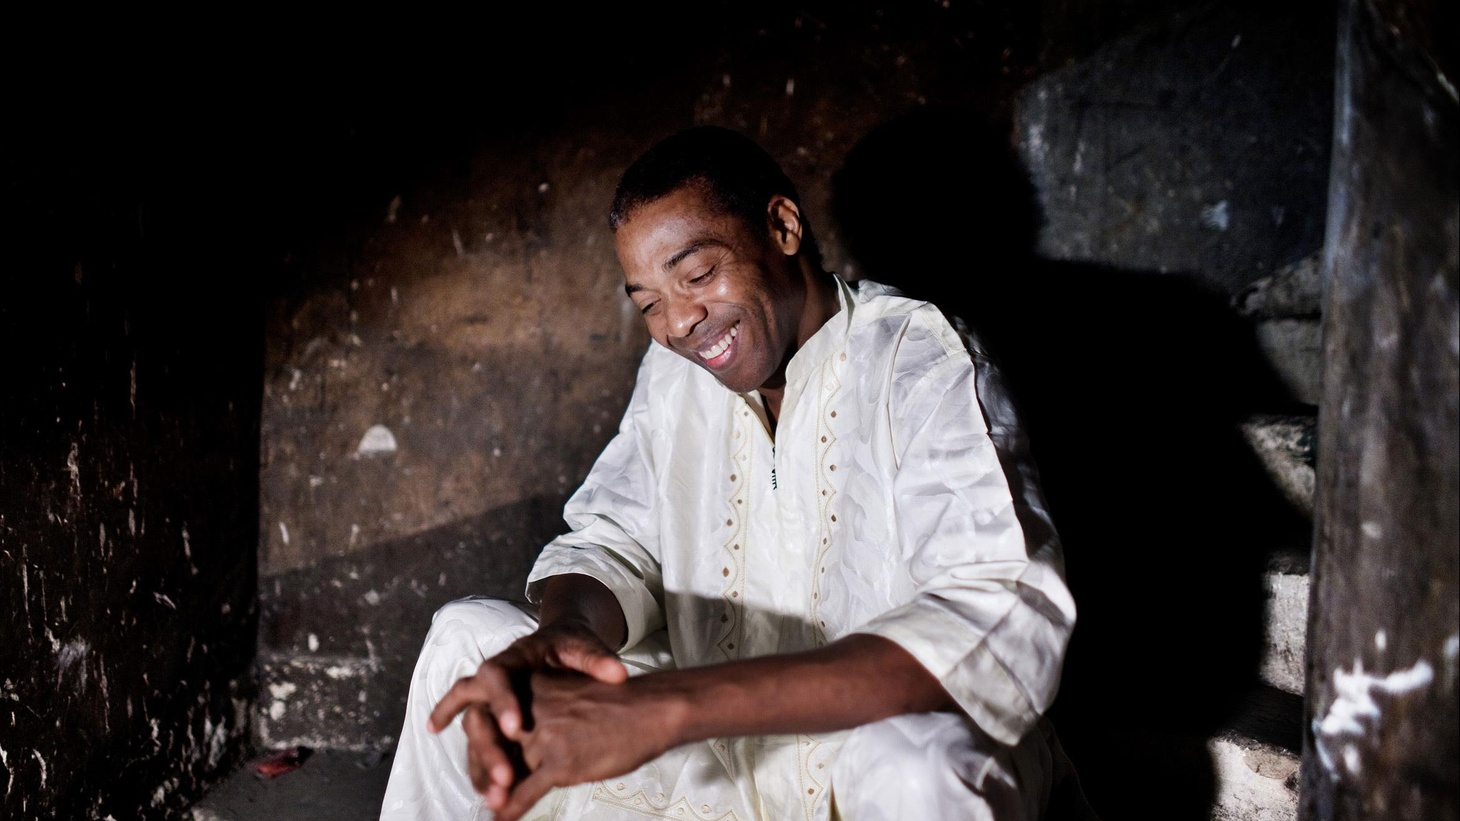 The son of Afro-Beat legend Fela Kuti, Femi Kuti carries on the family tradition with a socially conscious message wrapped in a propulsive beat...